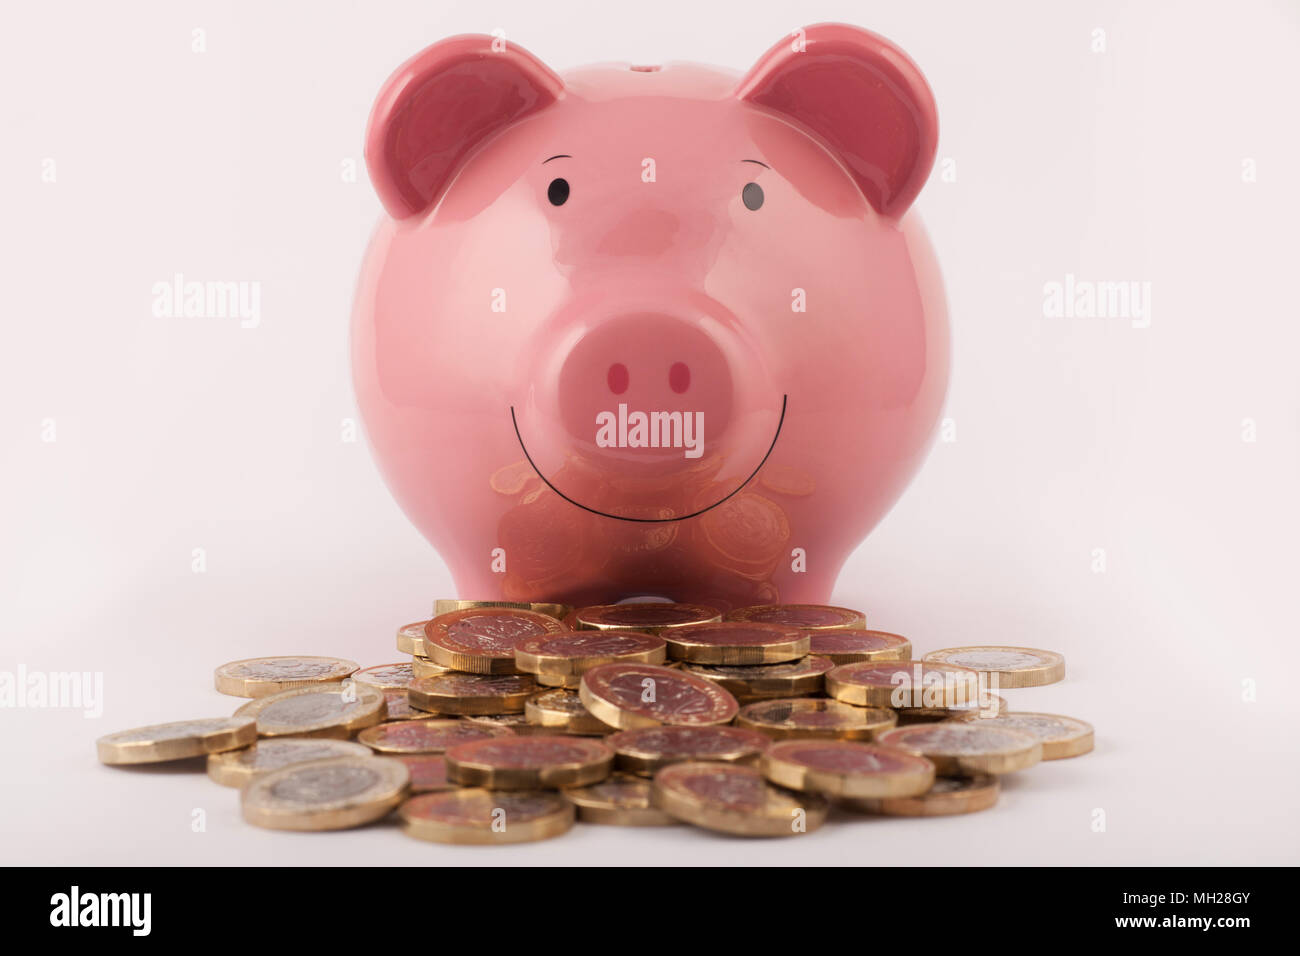 Piggy band and a pile of new (post 2016) pound coins - Stock Image